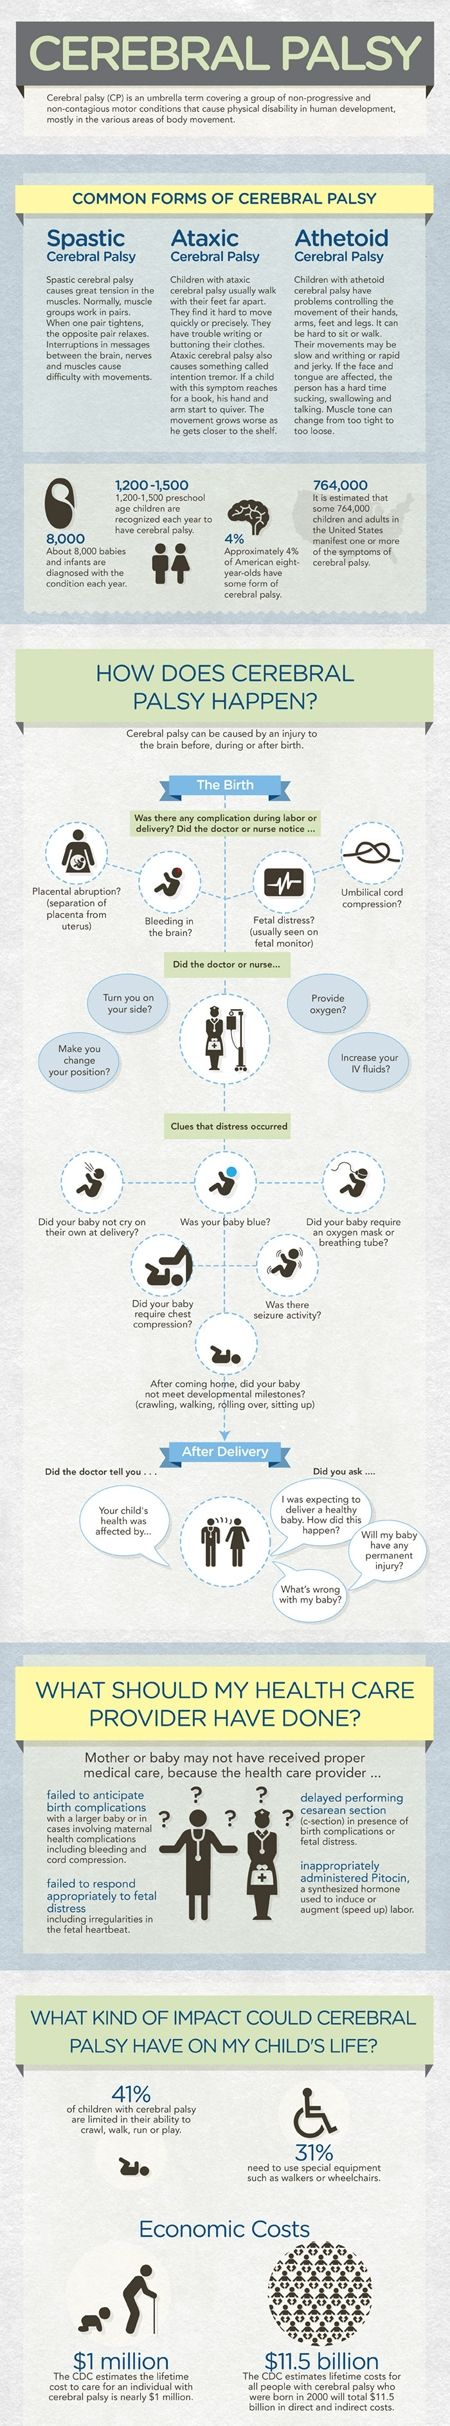 I found a very interesting infographic about Cerebral Palsy and I thought I would share it with you hoping it provides useful information. It presents the common forms of CP in a nutshell and colle...